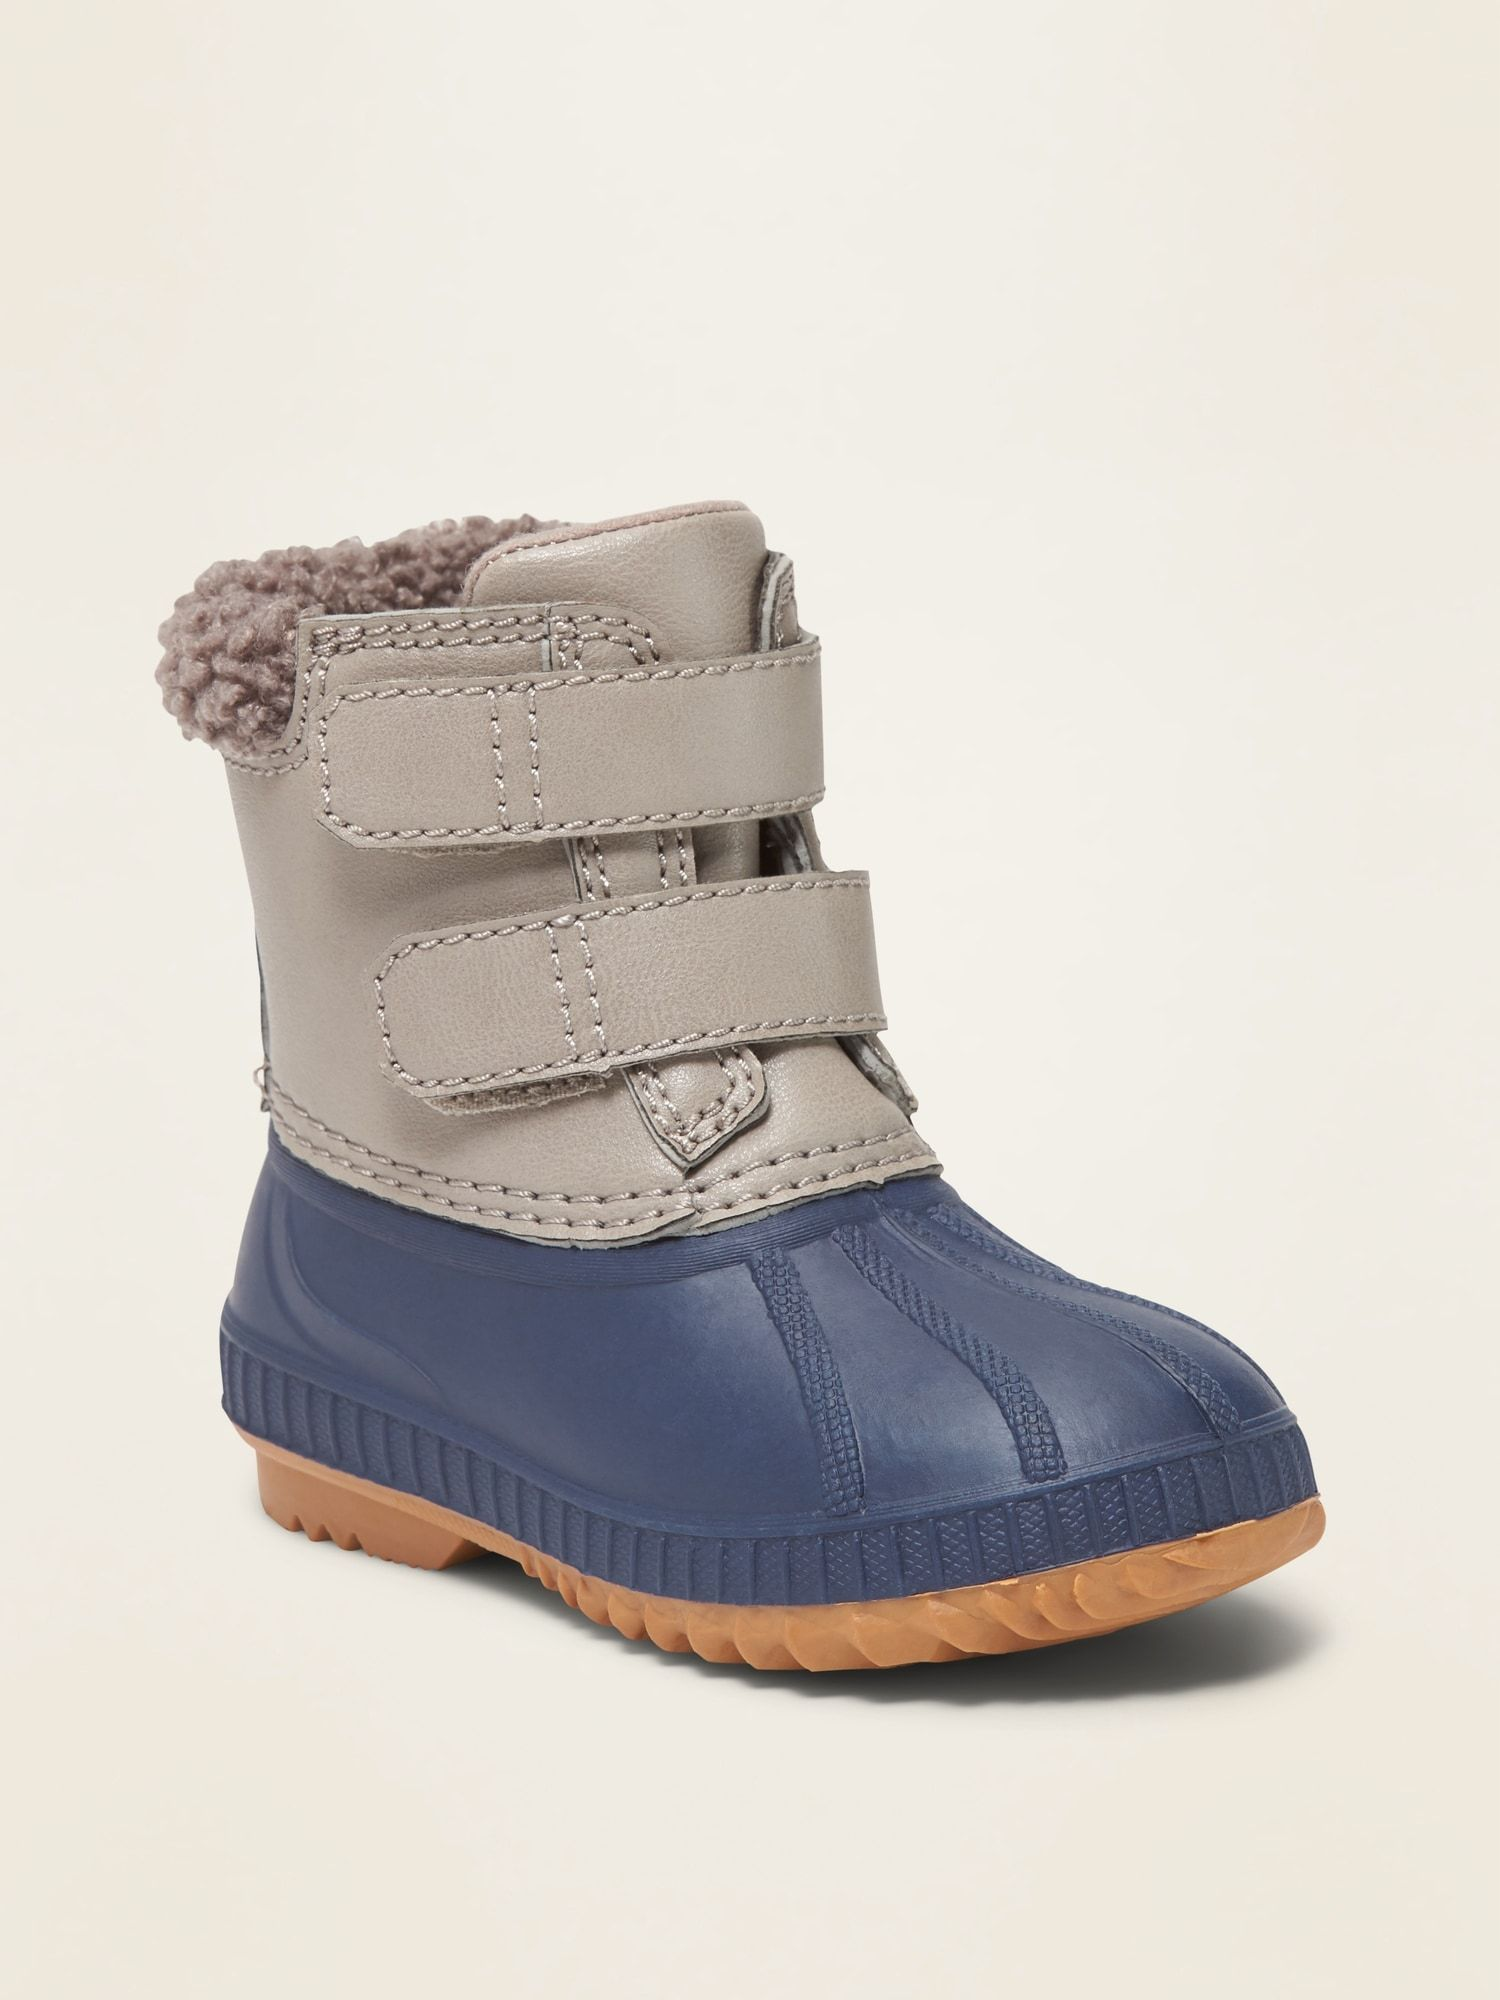 boots, Toddler snow boots